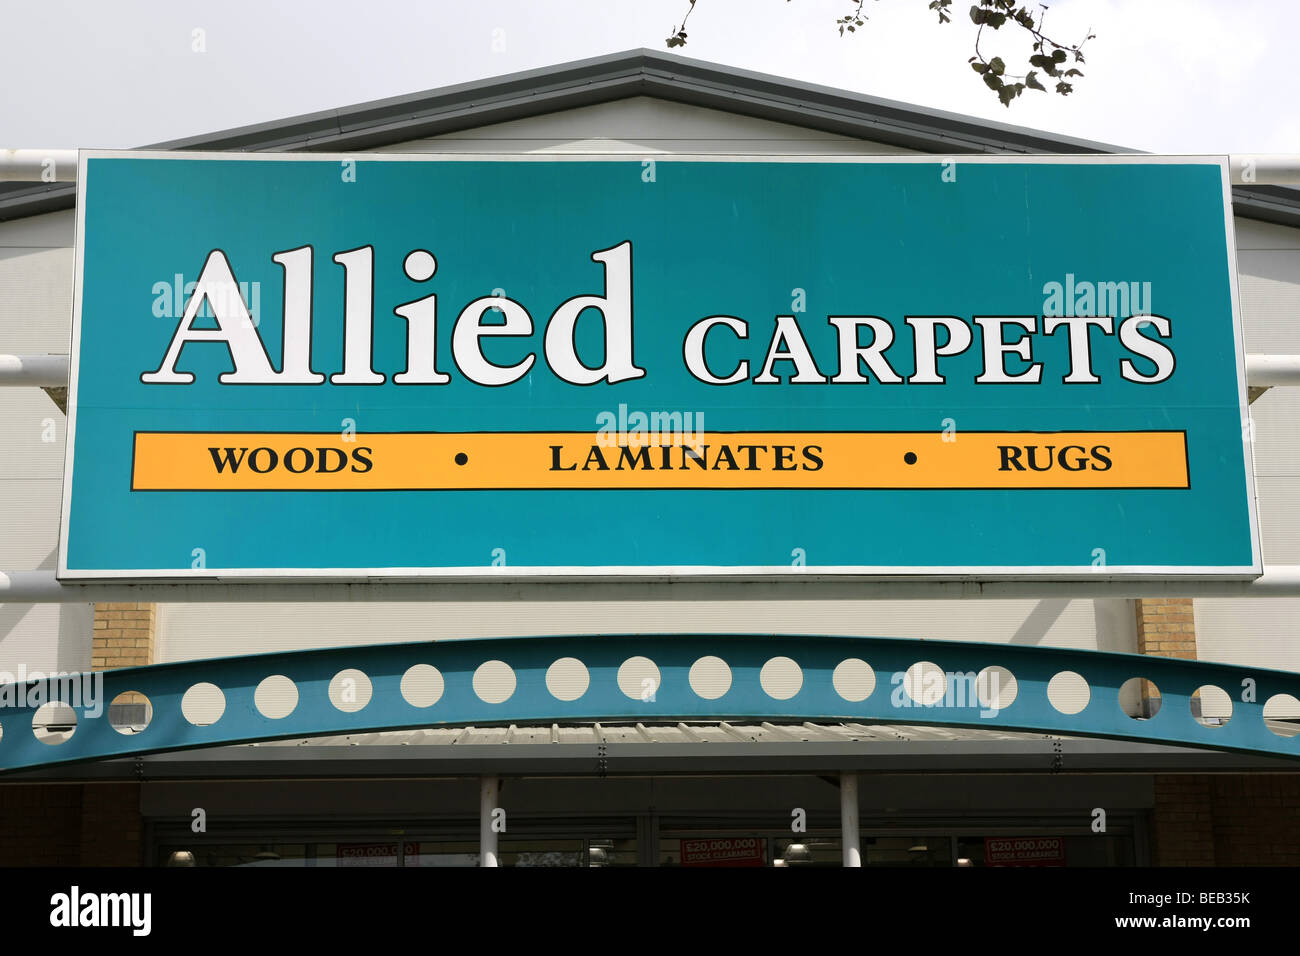 Allied Carpets Flooring sign - Stock Image